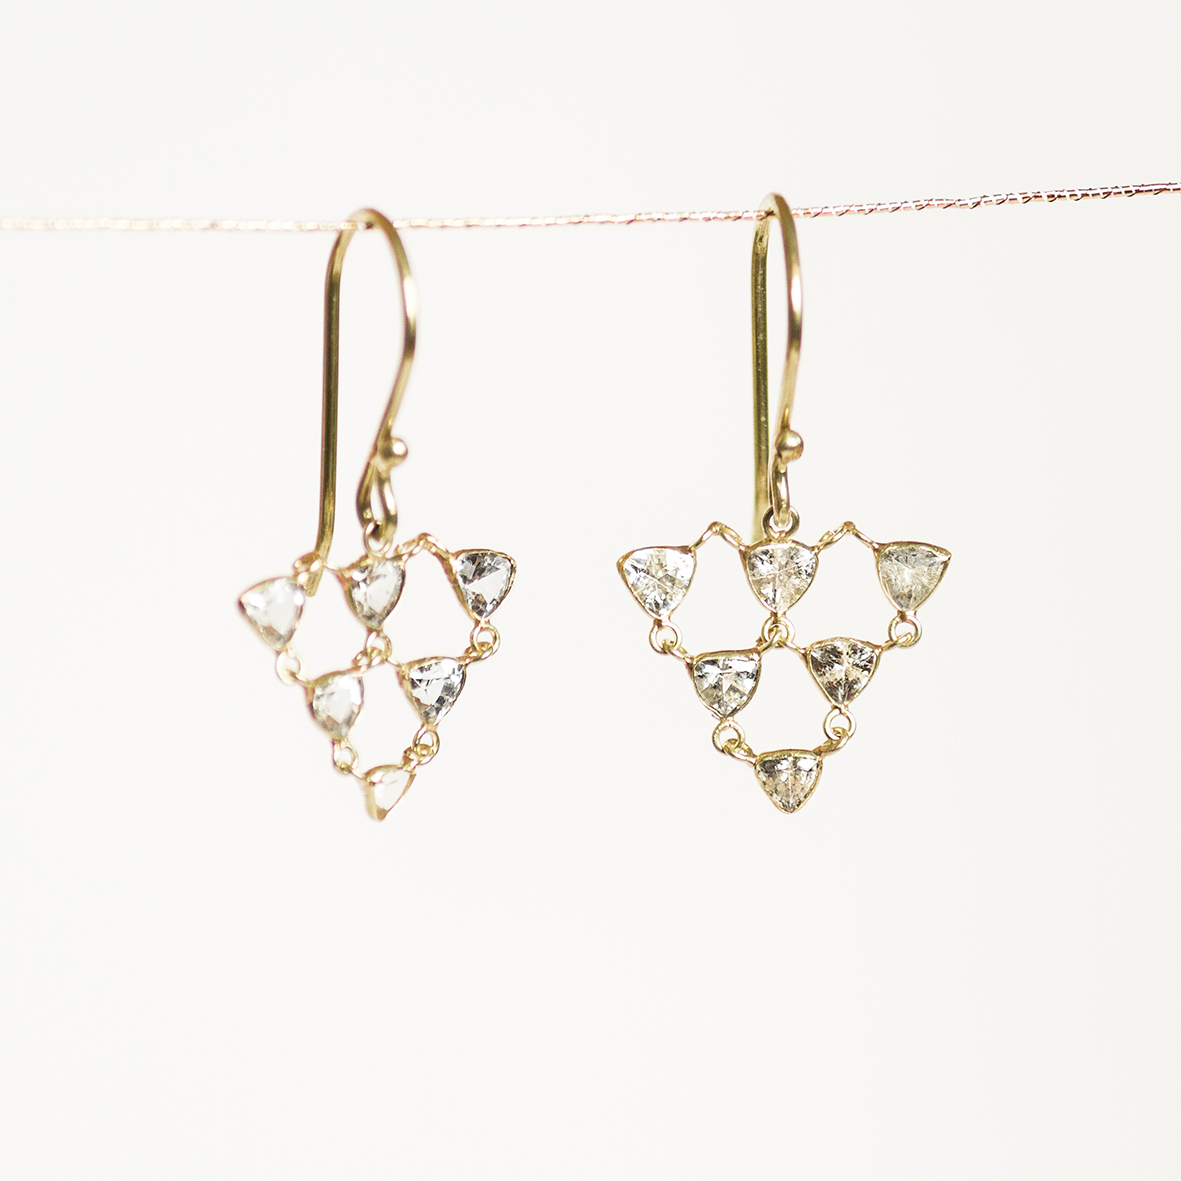 3. OONA_philo_ficha1_sapphire triangle earrings